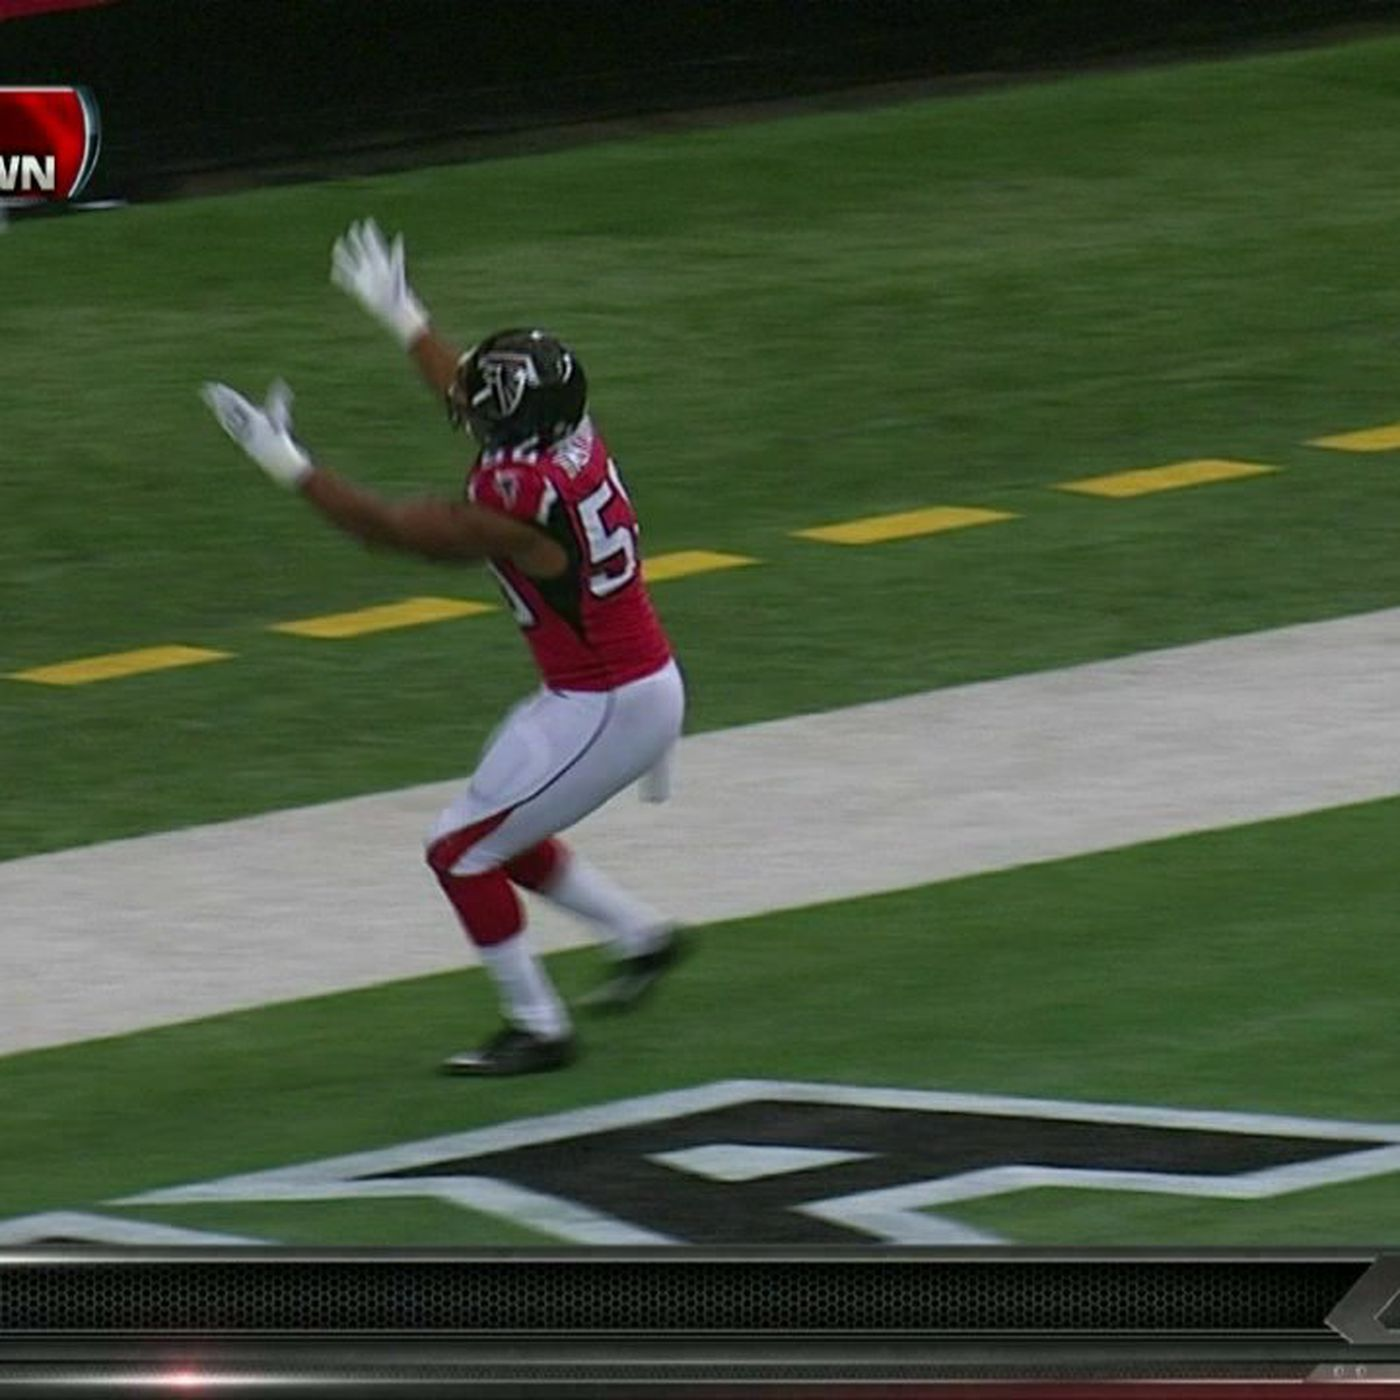 62cda1b78 Osi Umenyiora had the most fun scoring a touchdown - SBNation.com